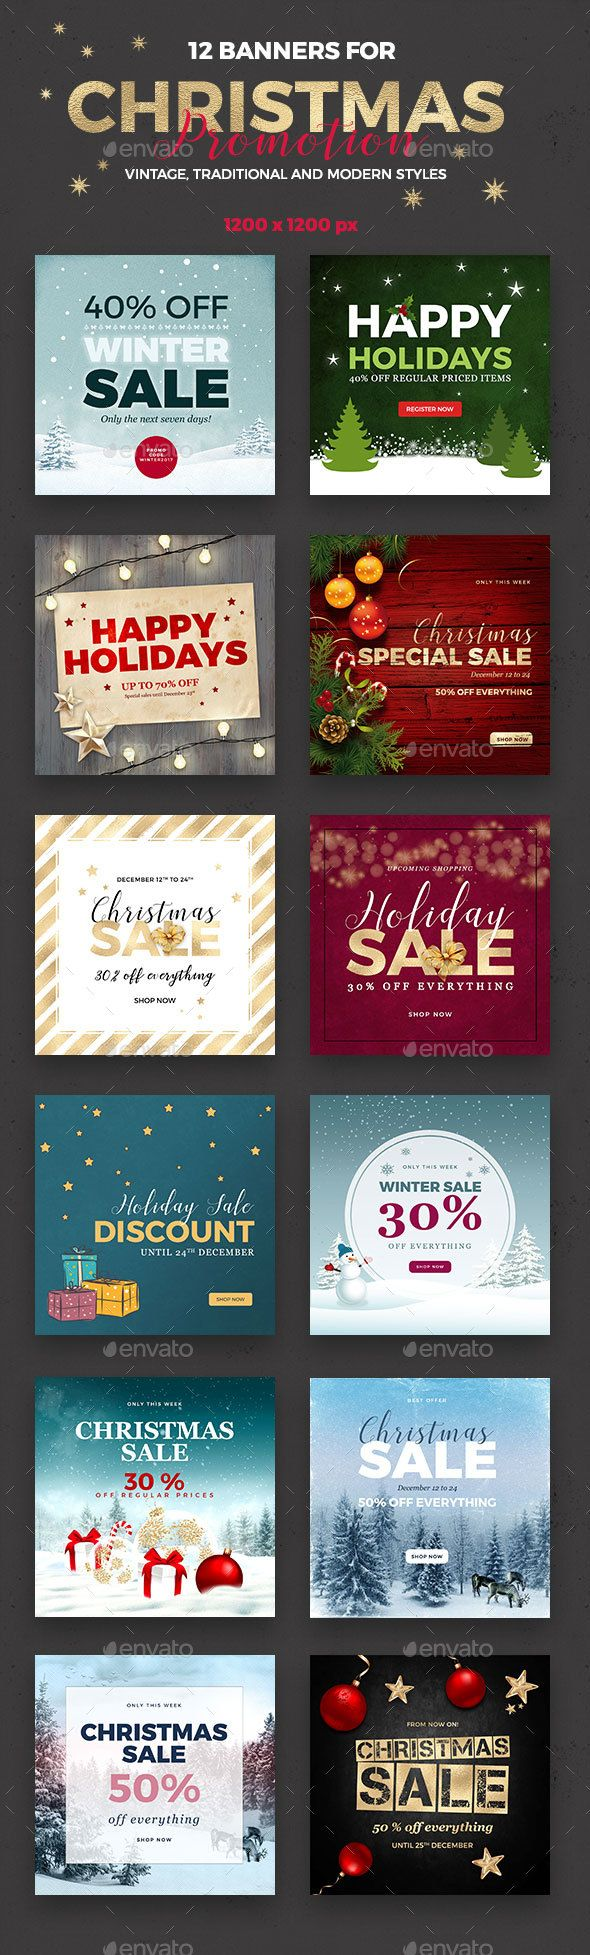 12 Christmas Banner - Social Media Web Elements box, bundle, business, celebration, christmas, clothes, color, cover, discounts, facebook, facebook cover, facebook fashion, image, image banner, instagram, link, link banner, New Year's Eve, offers, profile, retro, sales, season's greetings, shop online, social media, special price, timeline, timeline cover, web